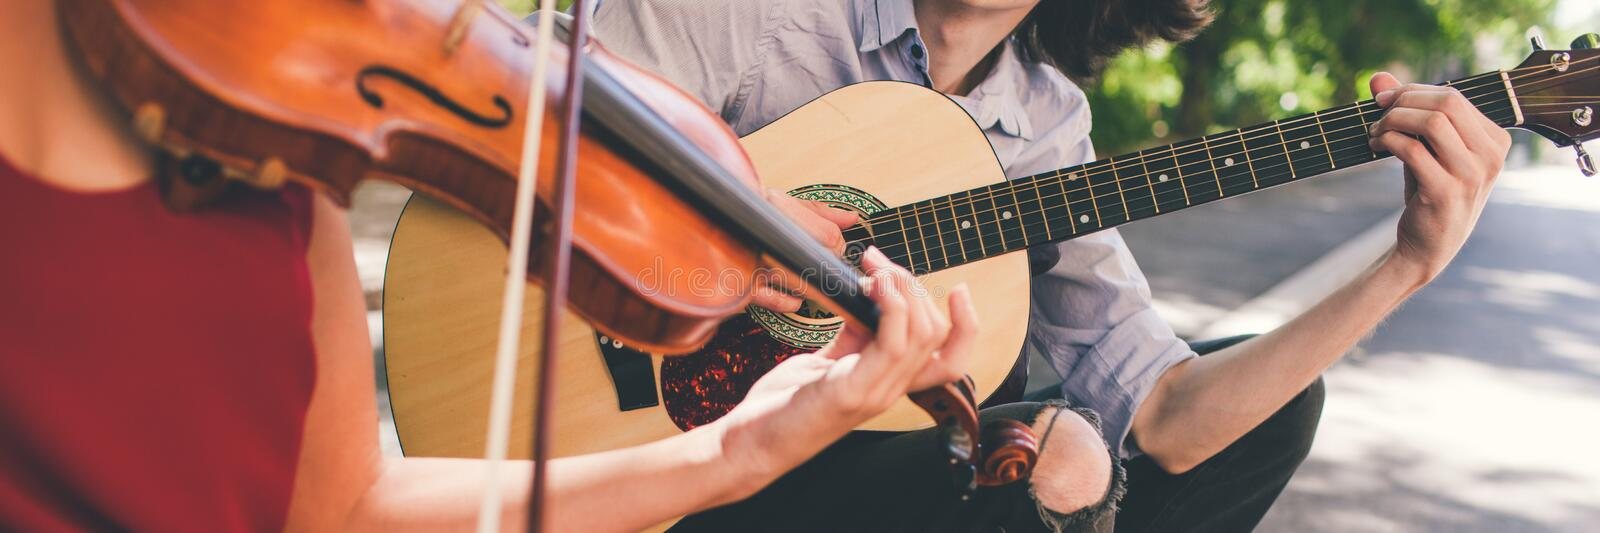 Musical instrument advertisement repair shop. Musical instrument advertising. guitar violin repair shop concept royalty free stock images